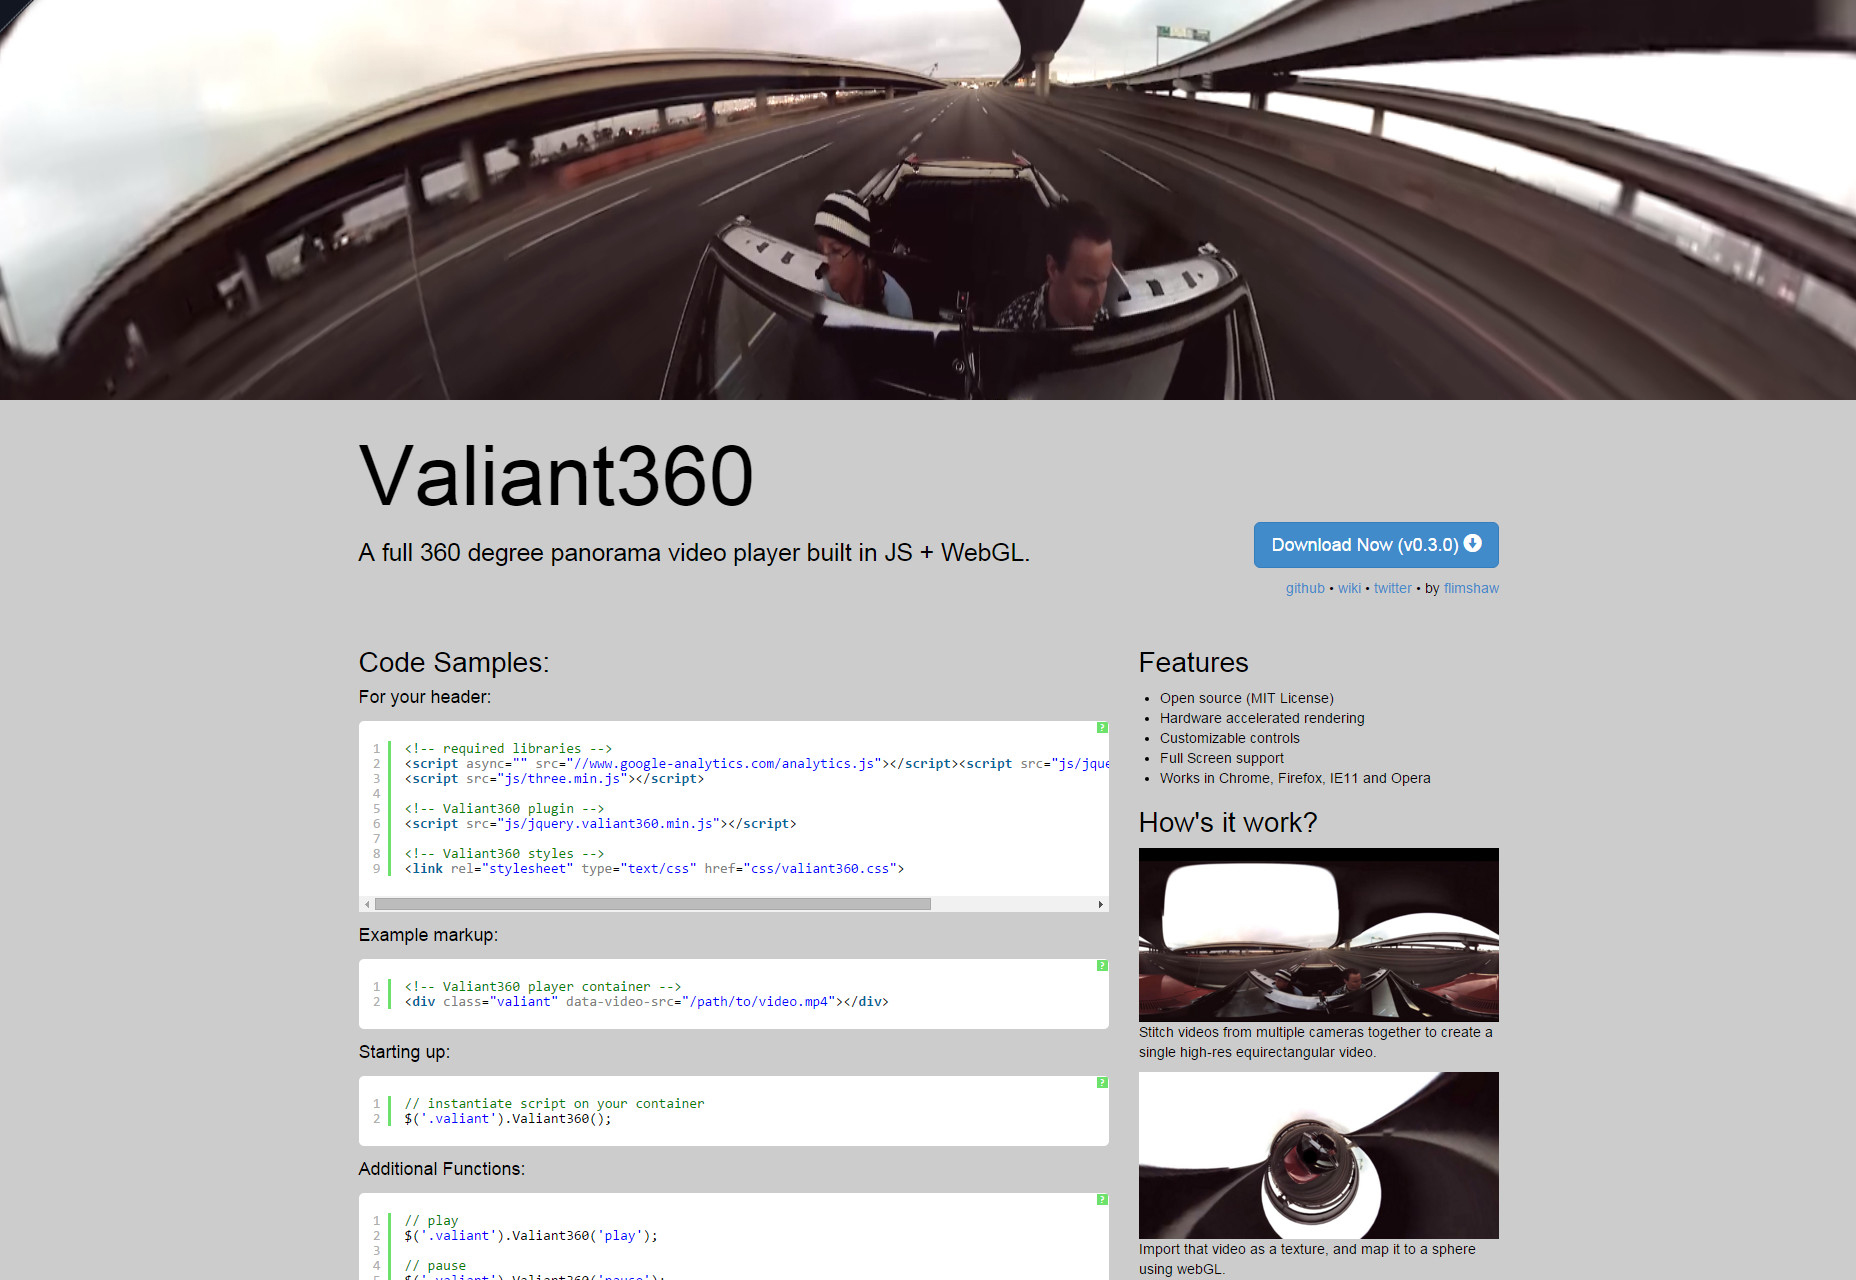 Valiant360: reproductor de video Panorama